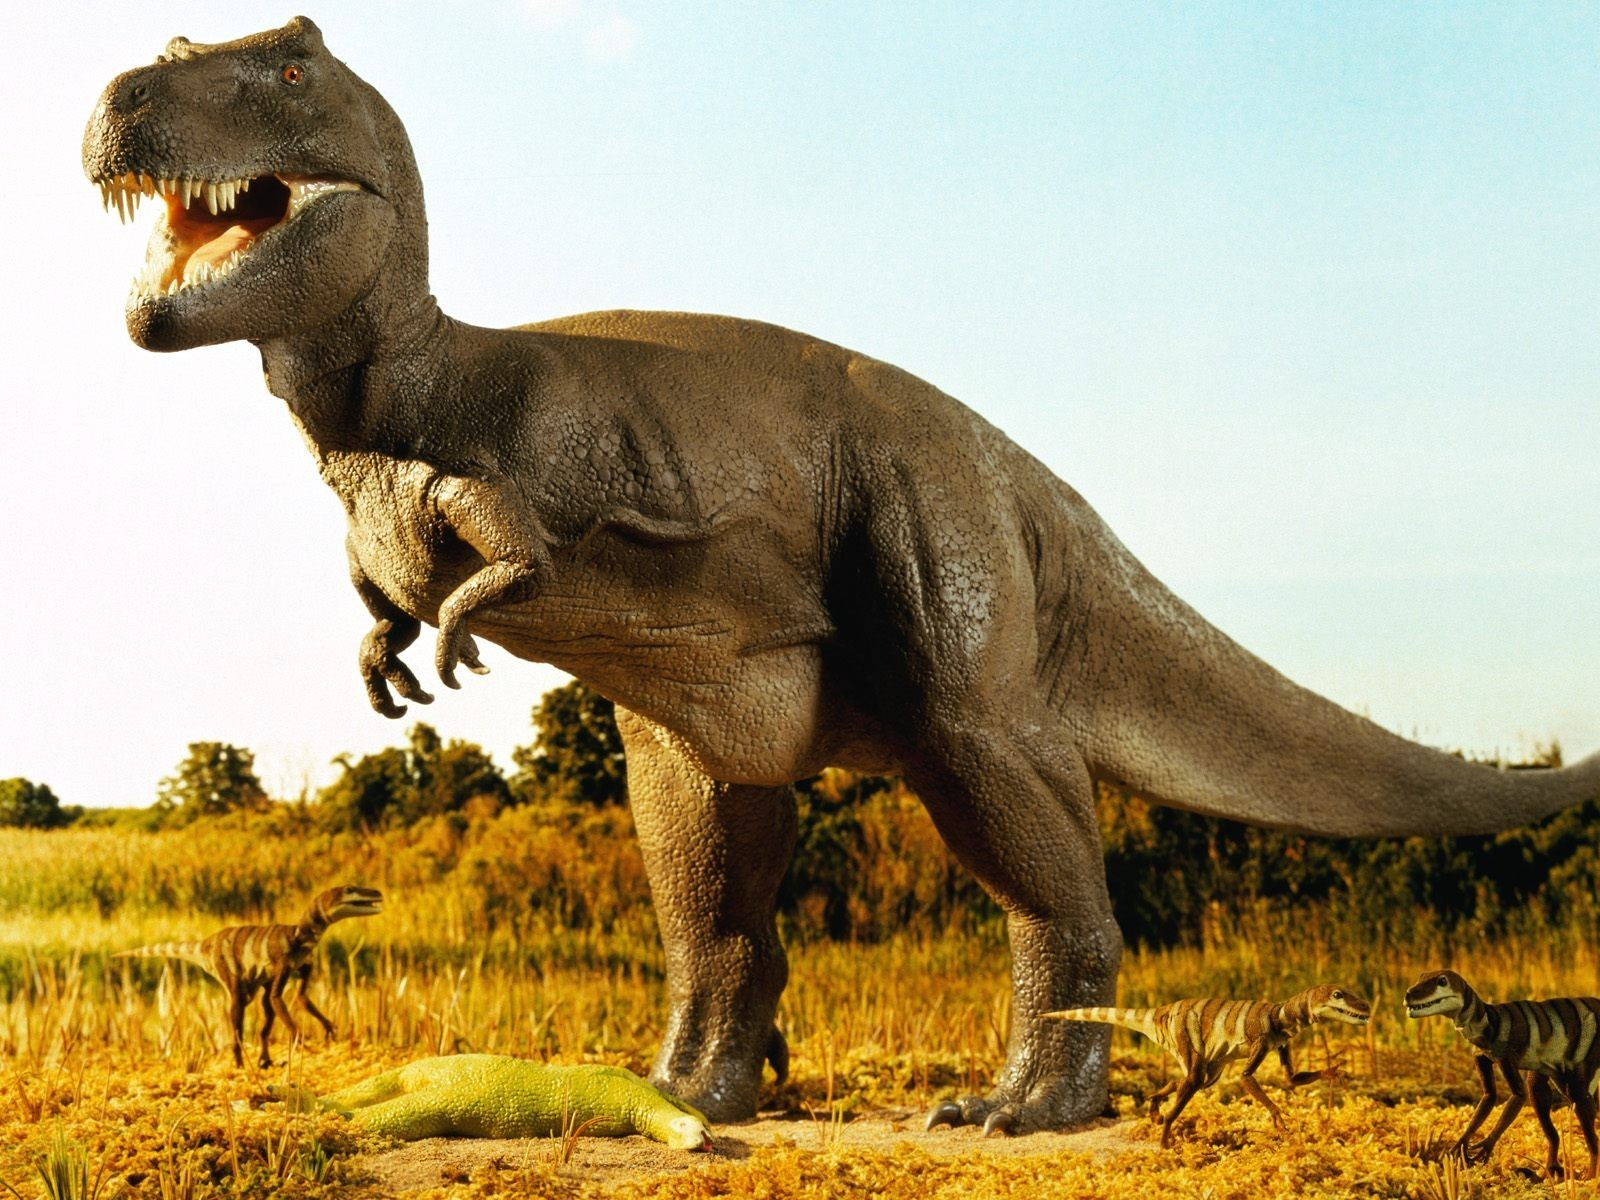 Pictures of Dinosaur